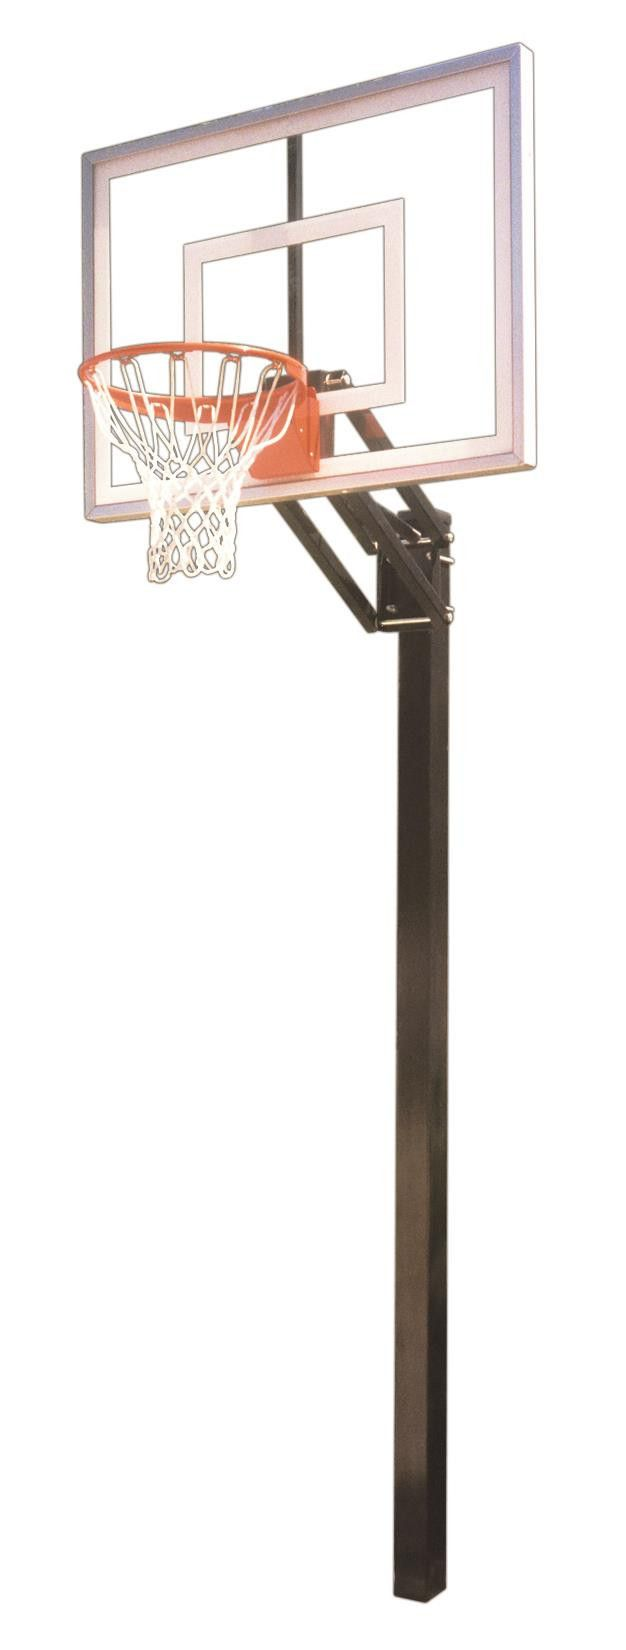 First Team Champ Turbo In Ground Outdoor Adjustable Basketball Hoop 54 inch Tempered Glass from NJ Swingsets